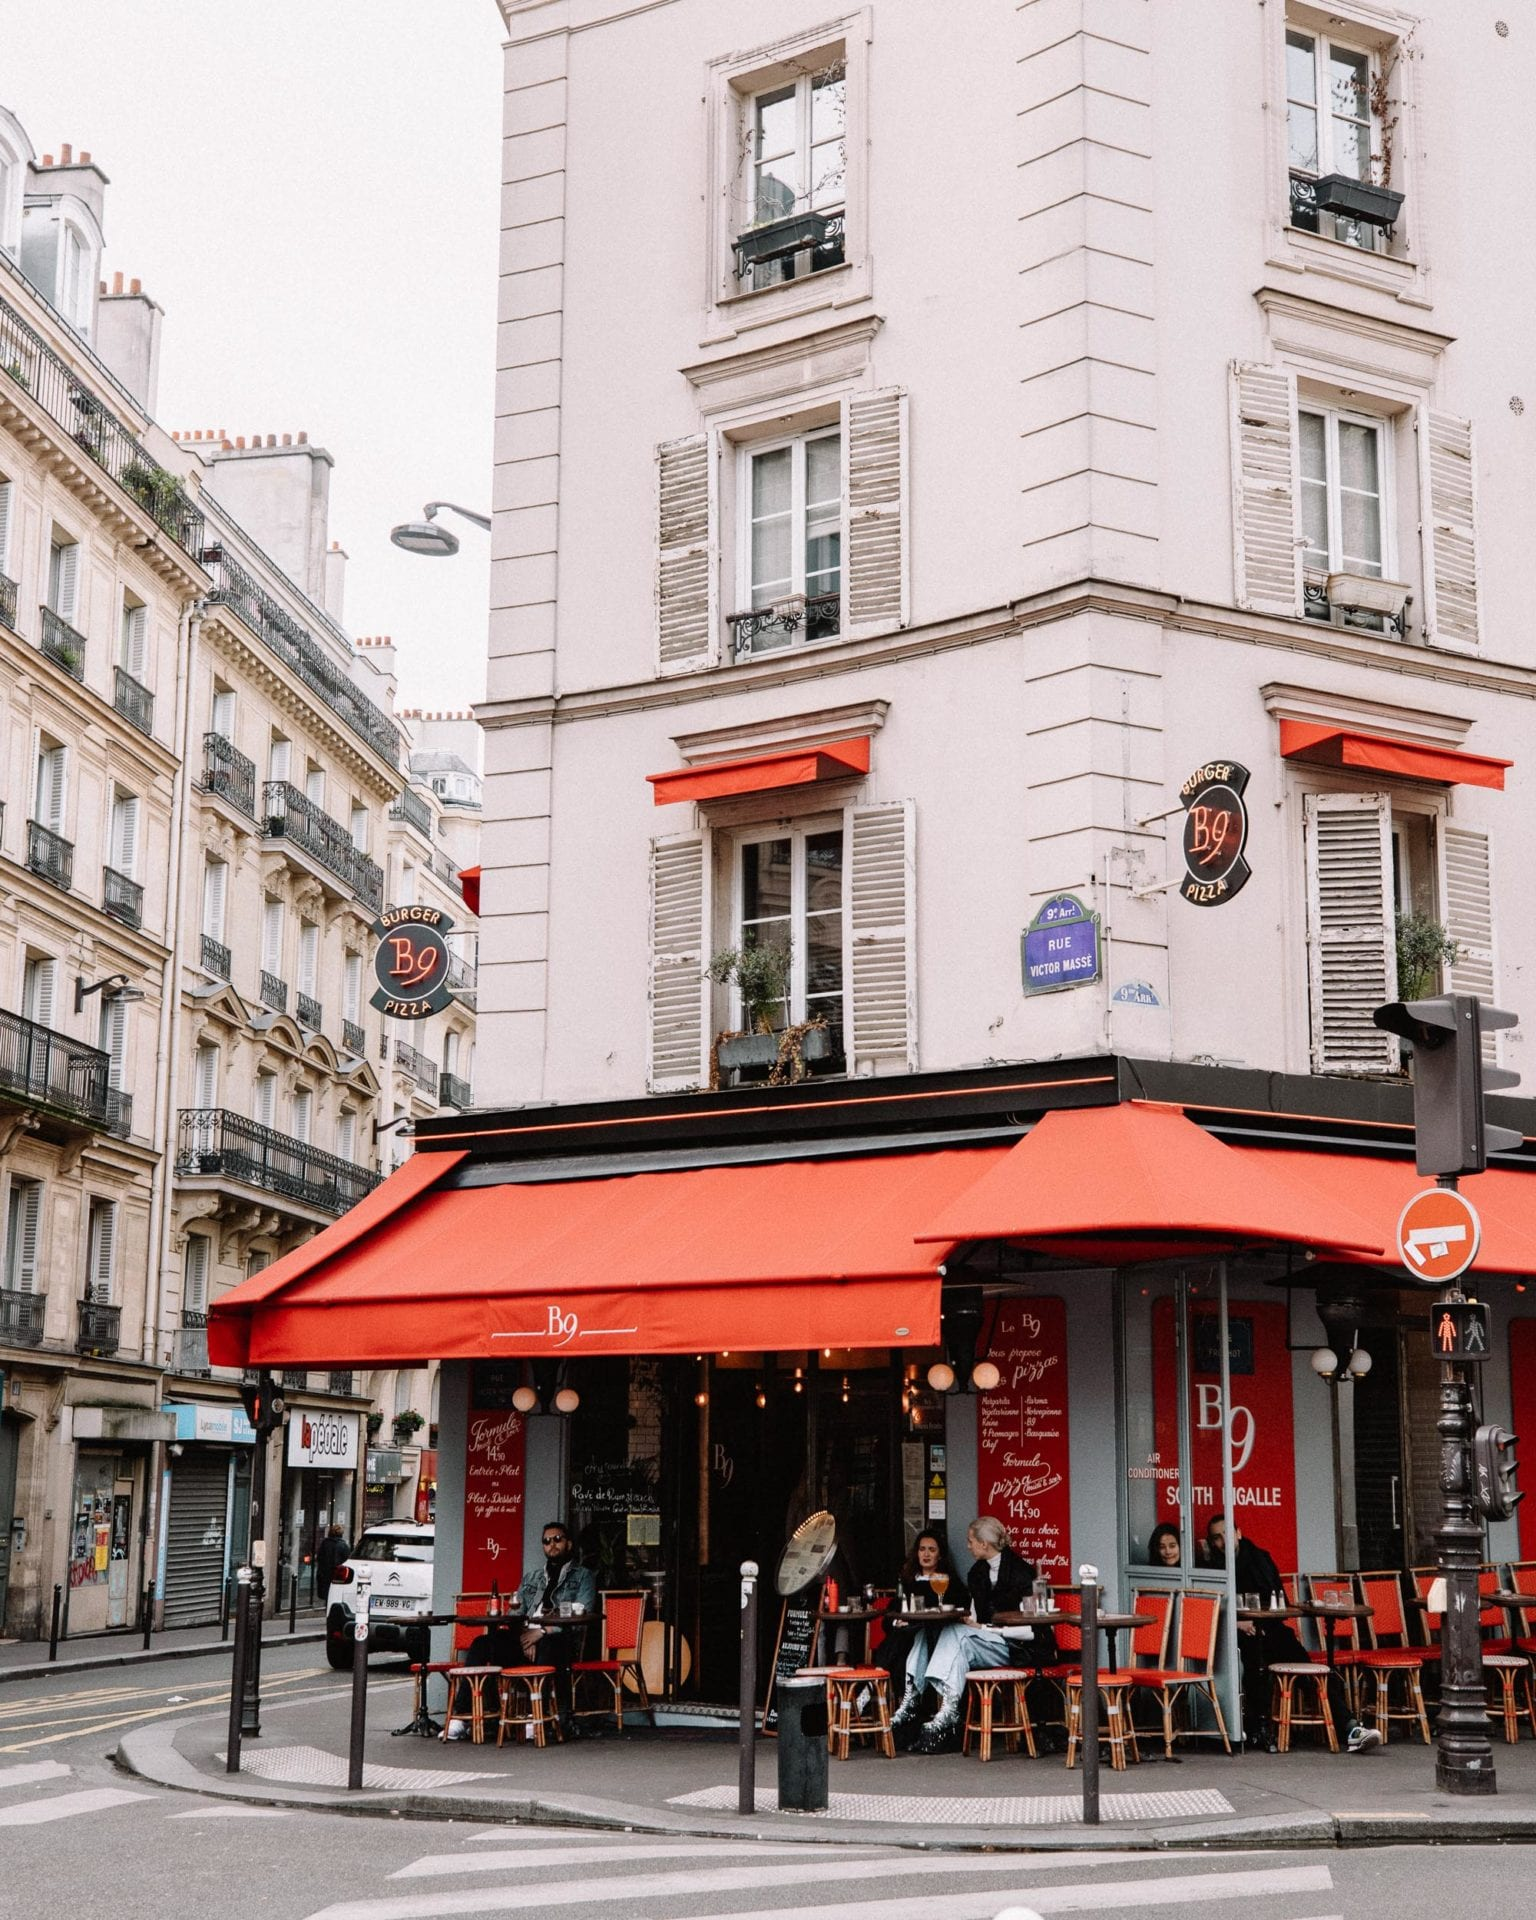 Weekend in paris cafes during Valentine's Day